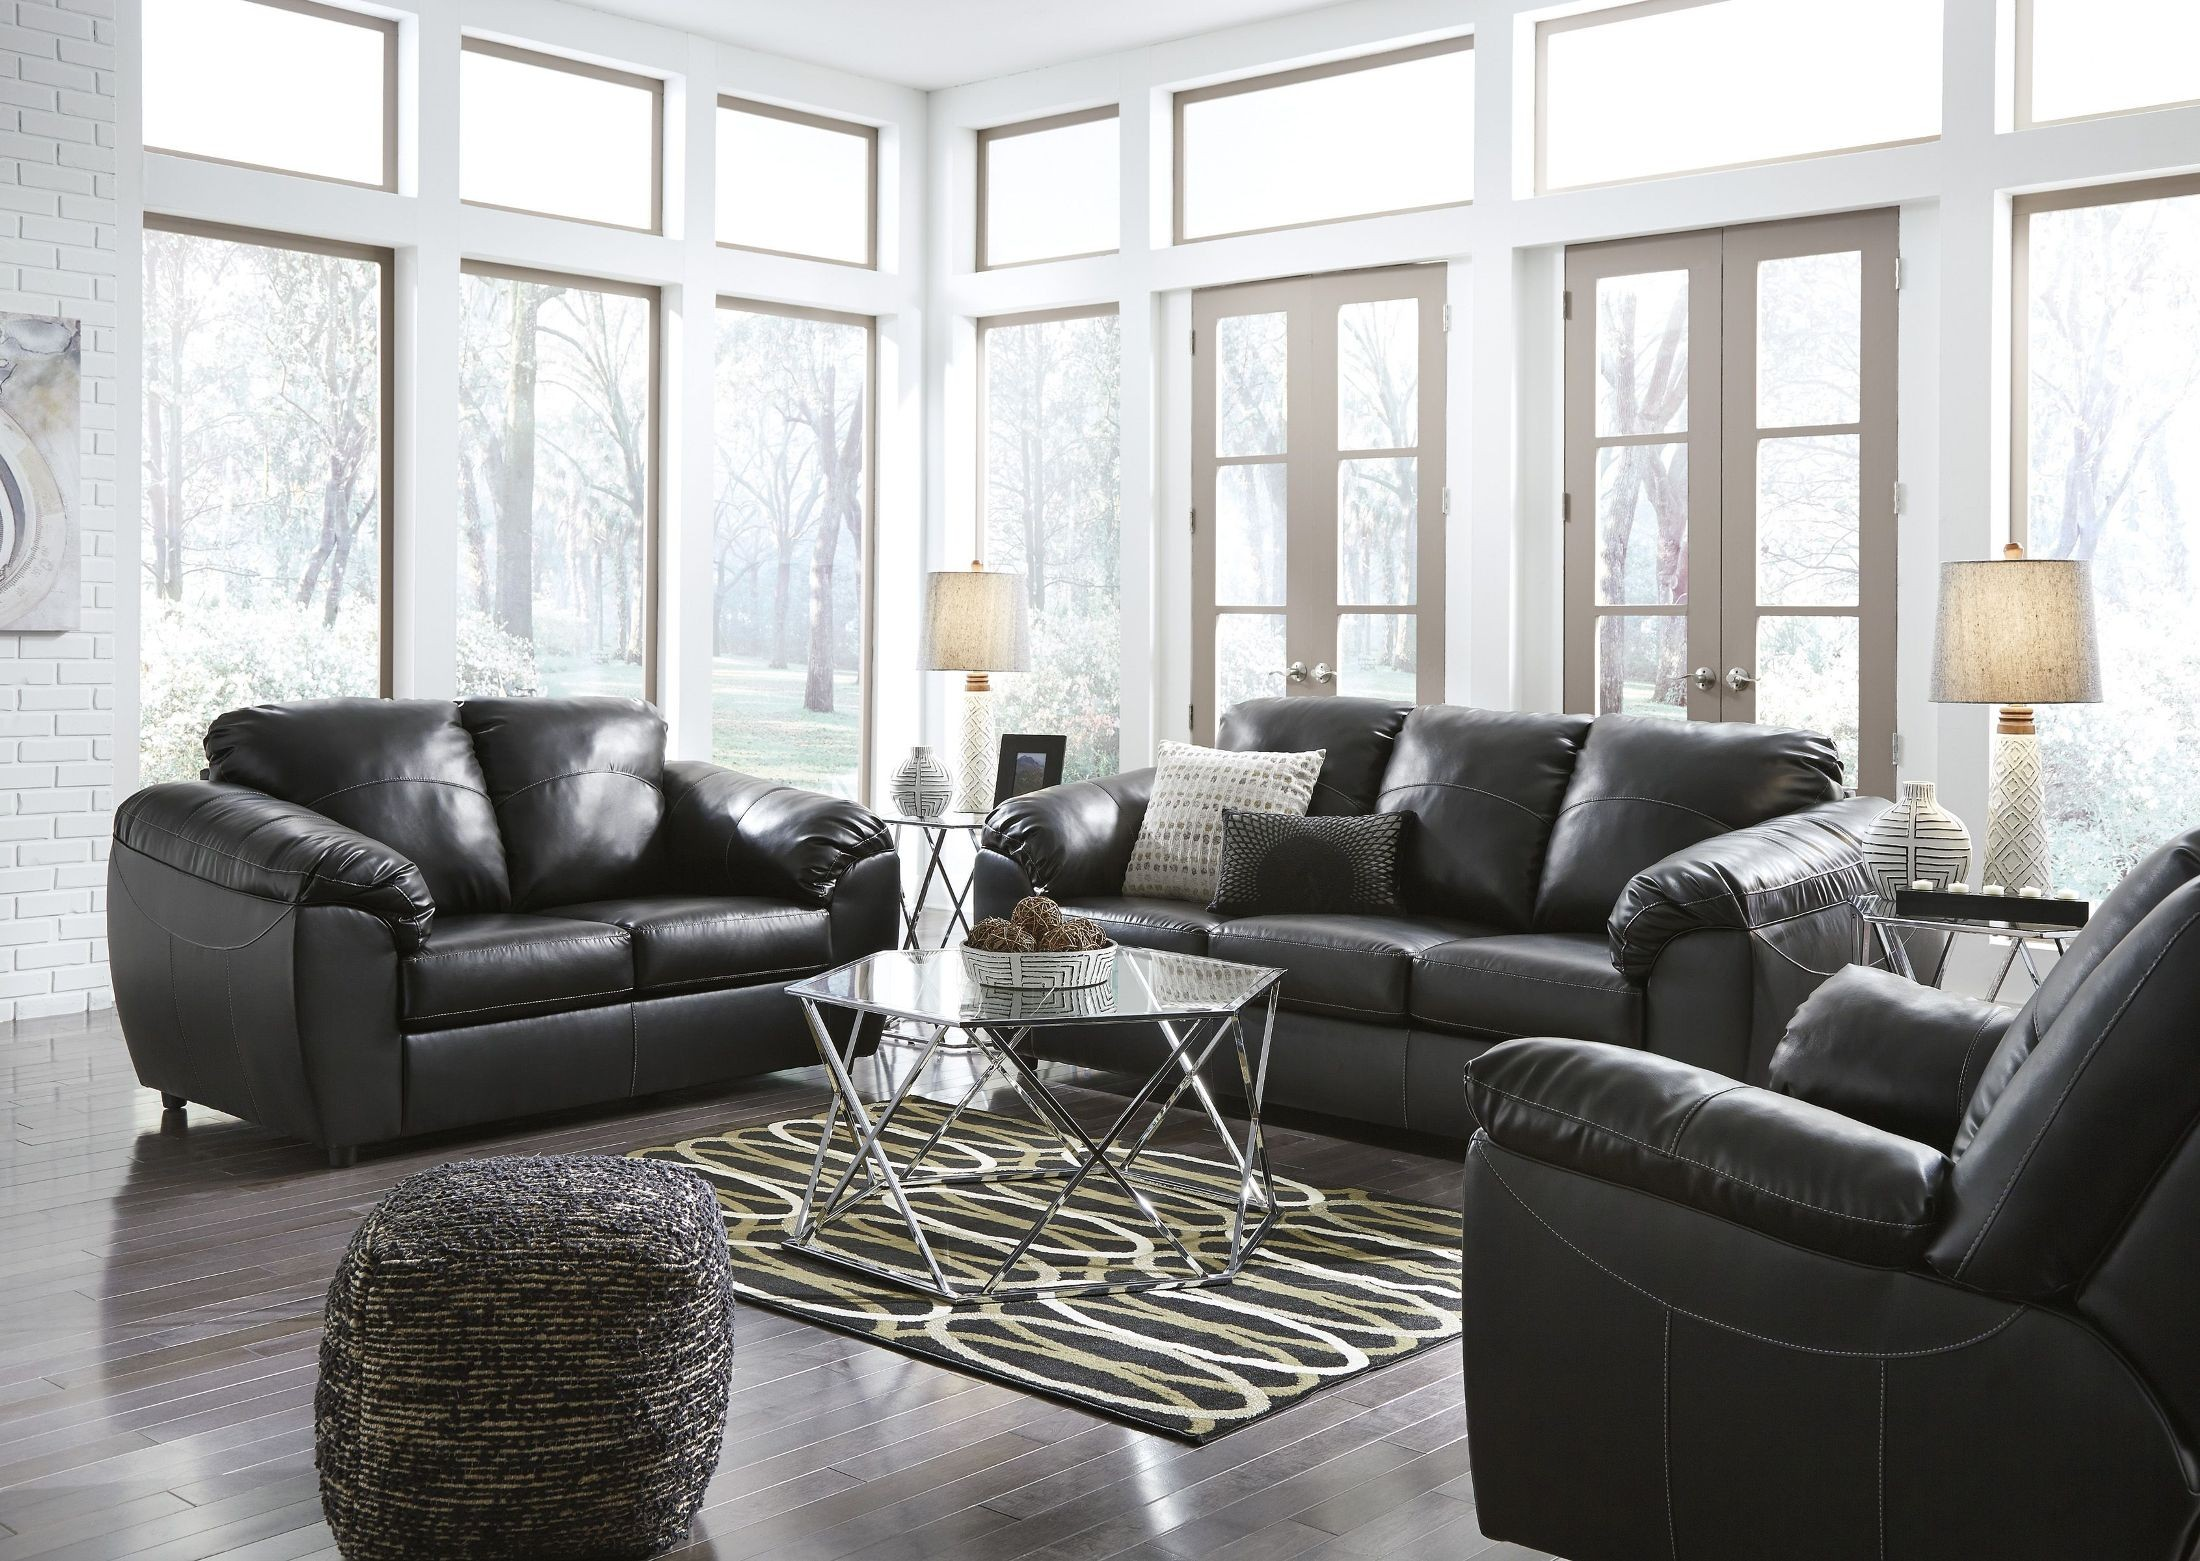 Fezzman Onyx Living Room Set from Ashley | Coleman Furniture